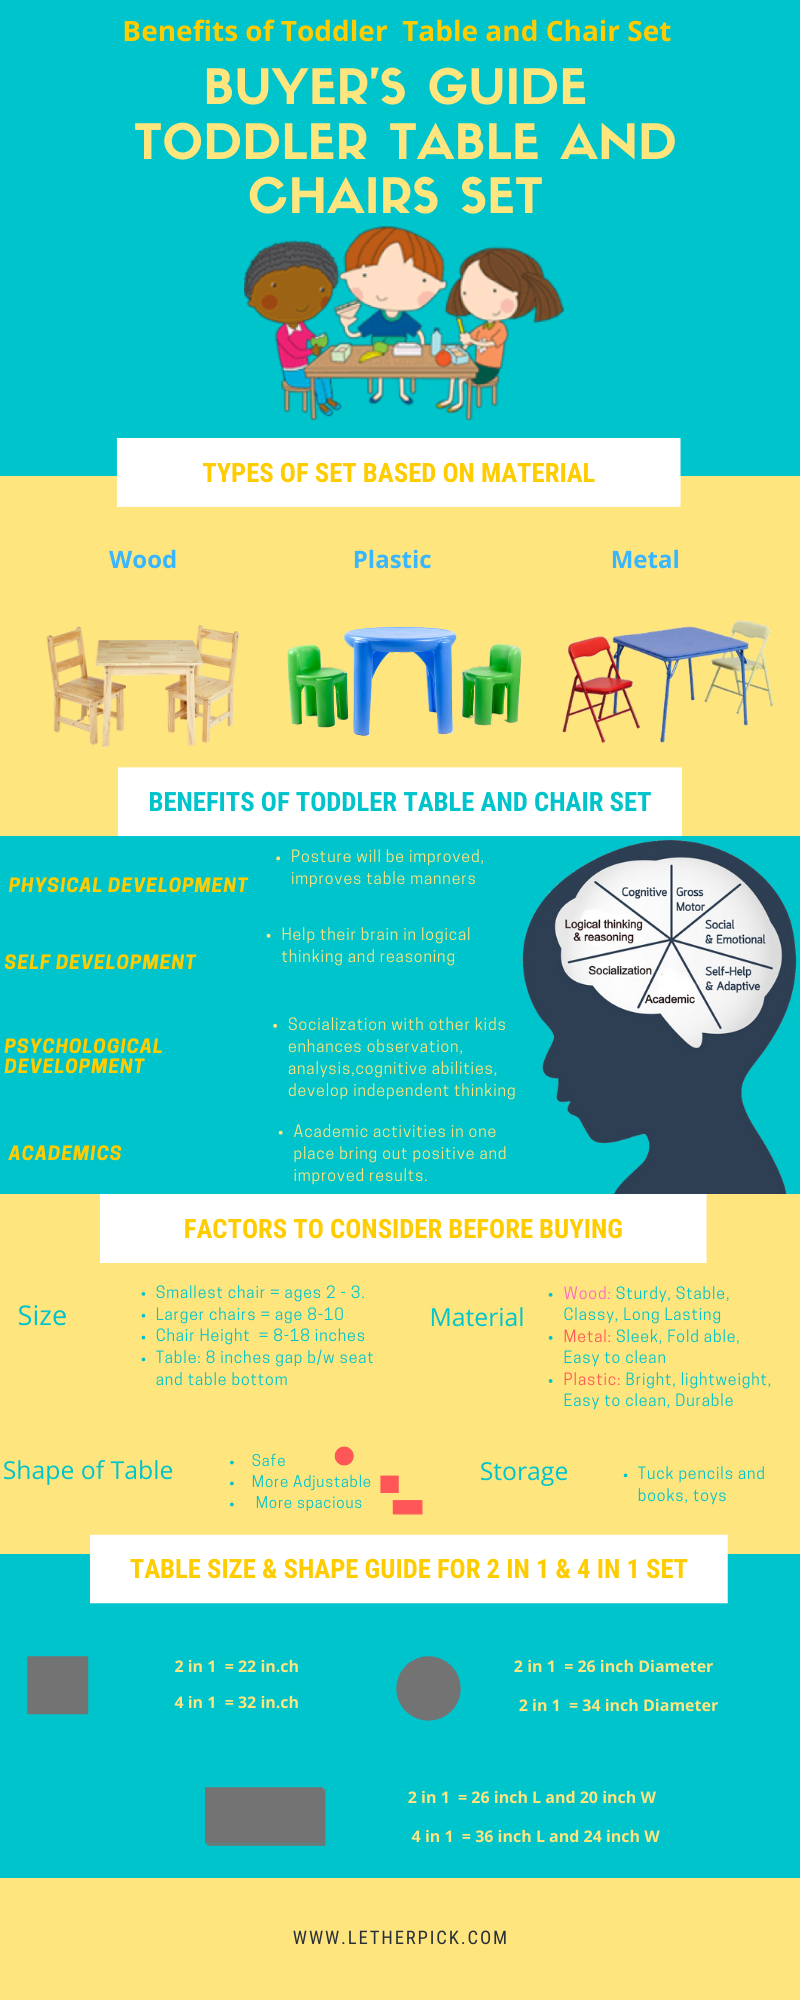 Best toddler table and chair set infographic